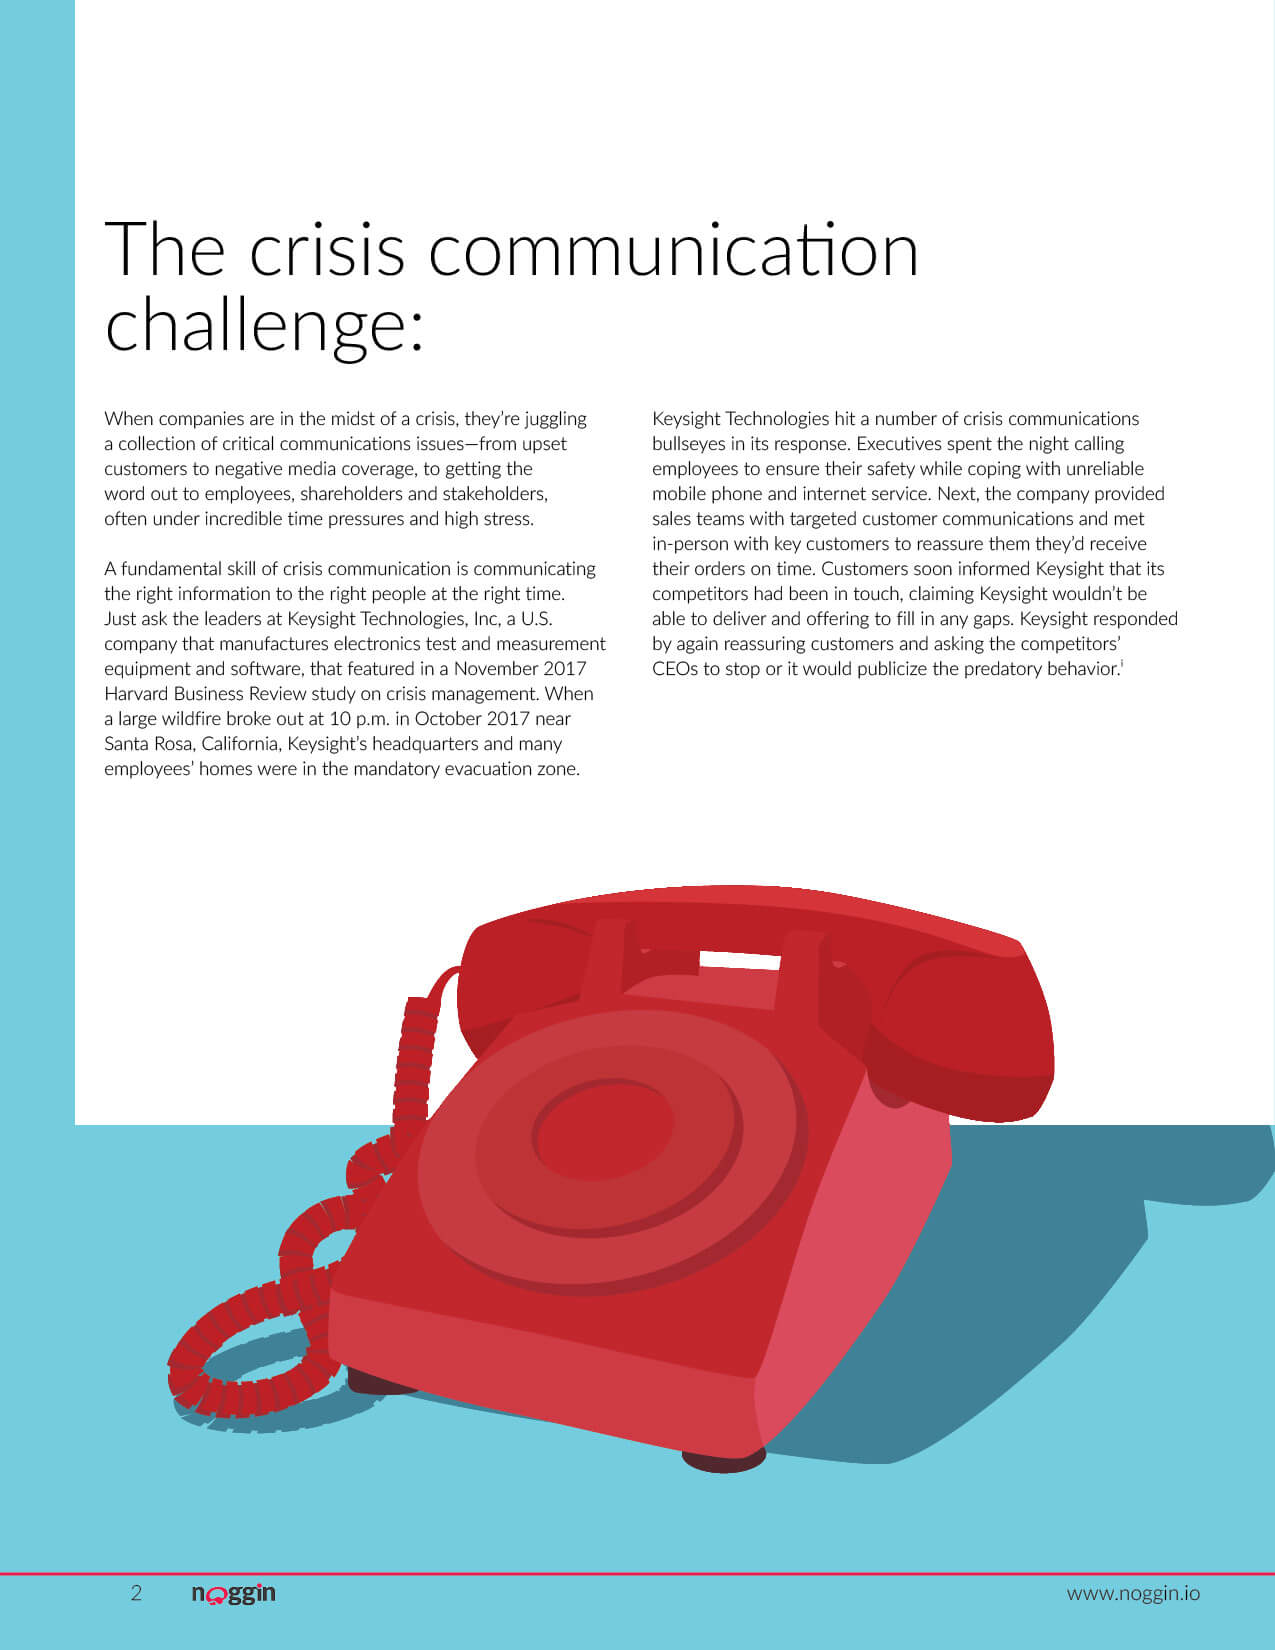 Noggin white paper guide on Effective Crisis Communication. This was created to drive marketing qualified leads for the Noggin Crisis product from the website. Page 2 of 9